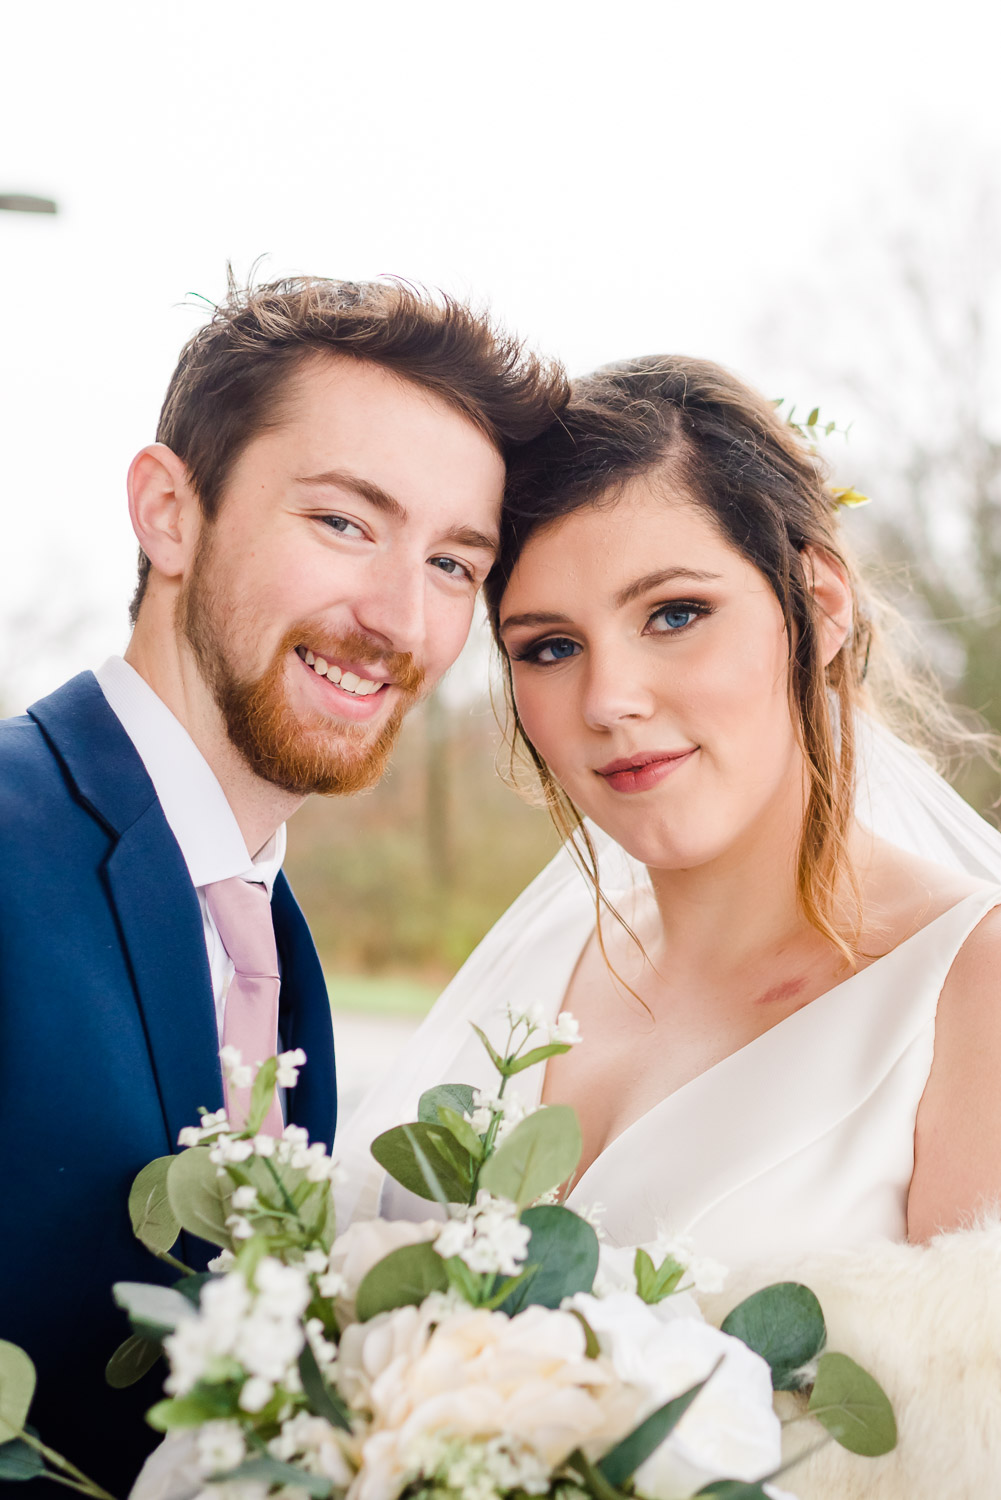 happy wedding couple with white bouquet